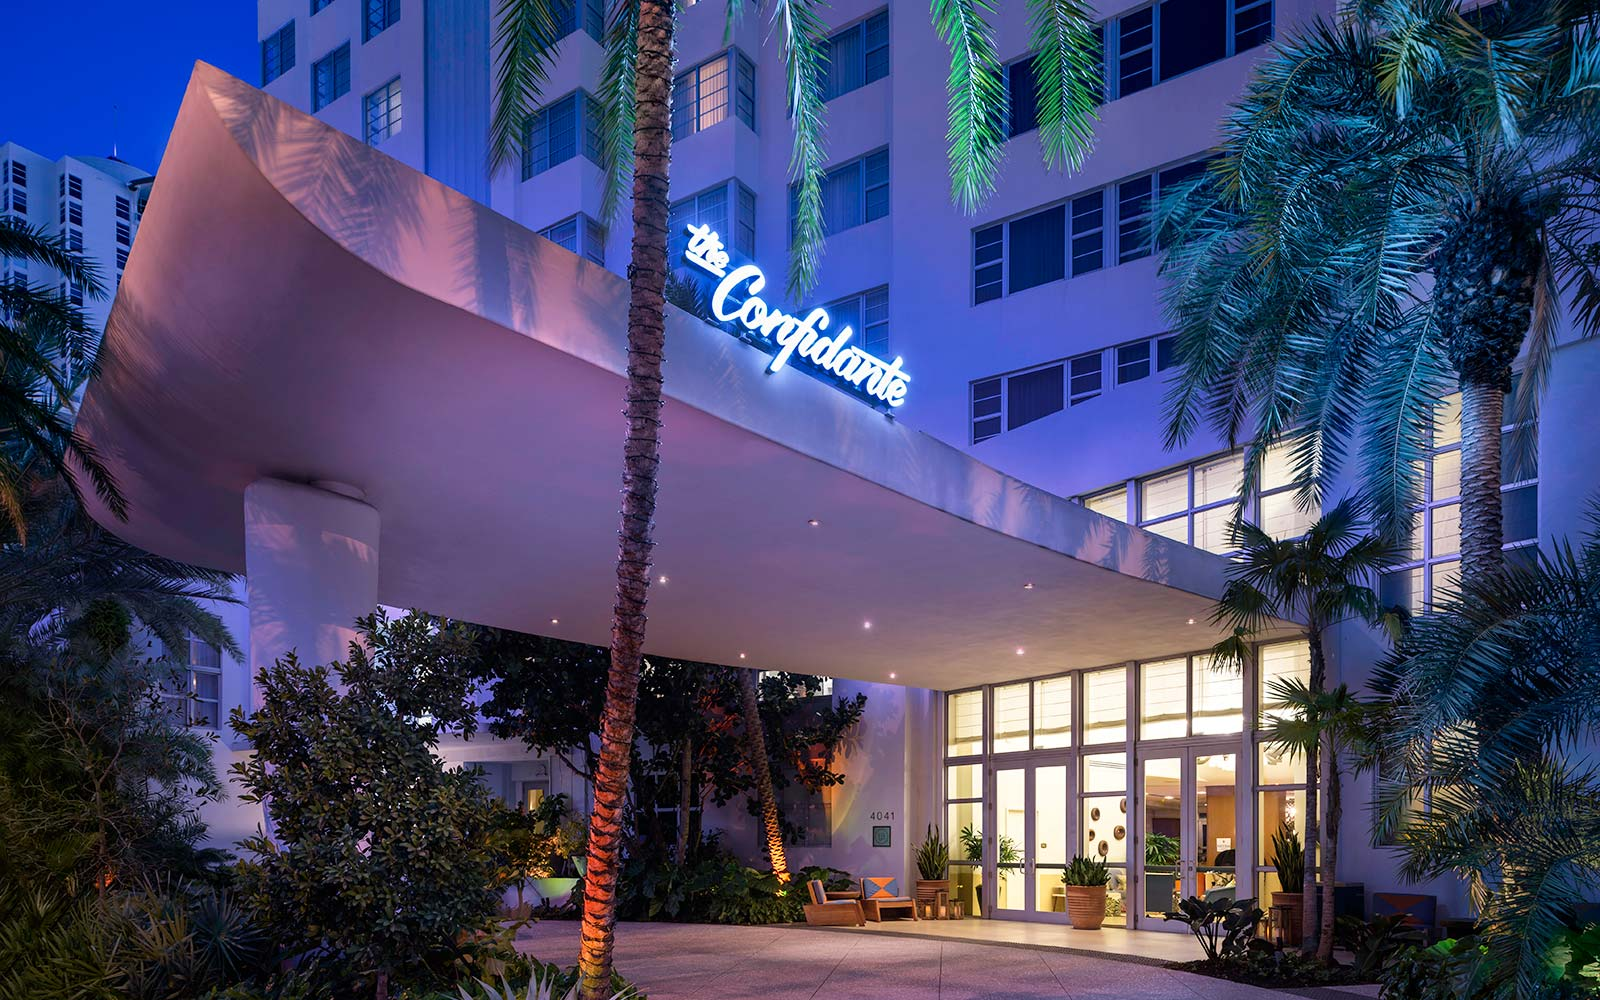 Save 40% on Stays at The Confidante in Miami Beach